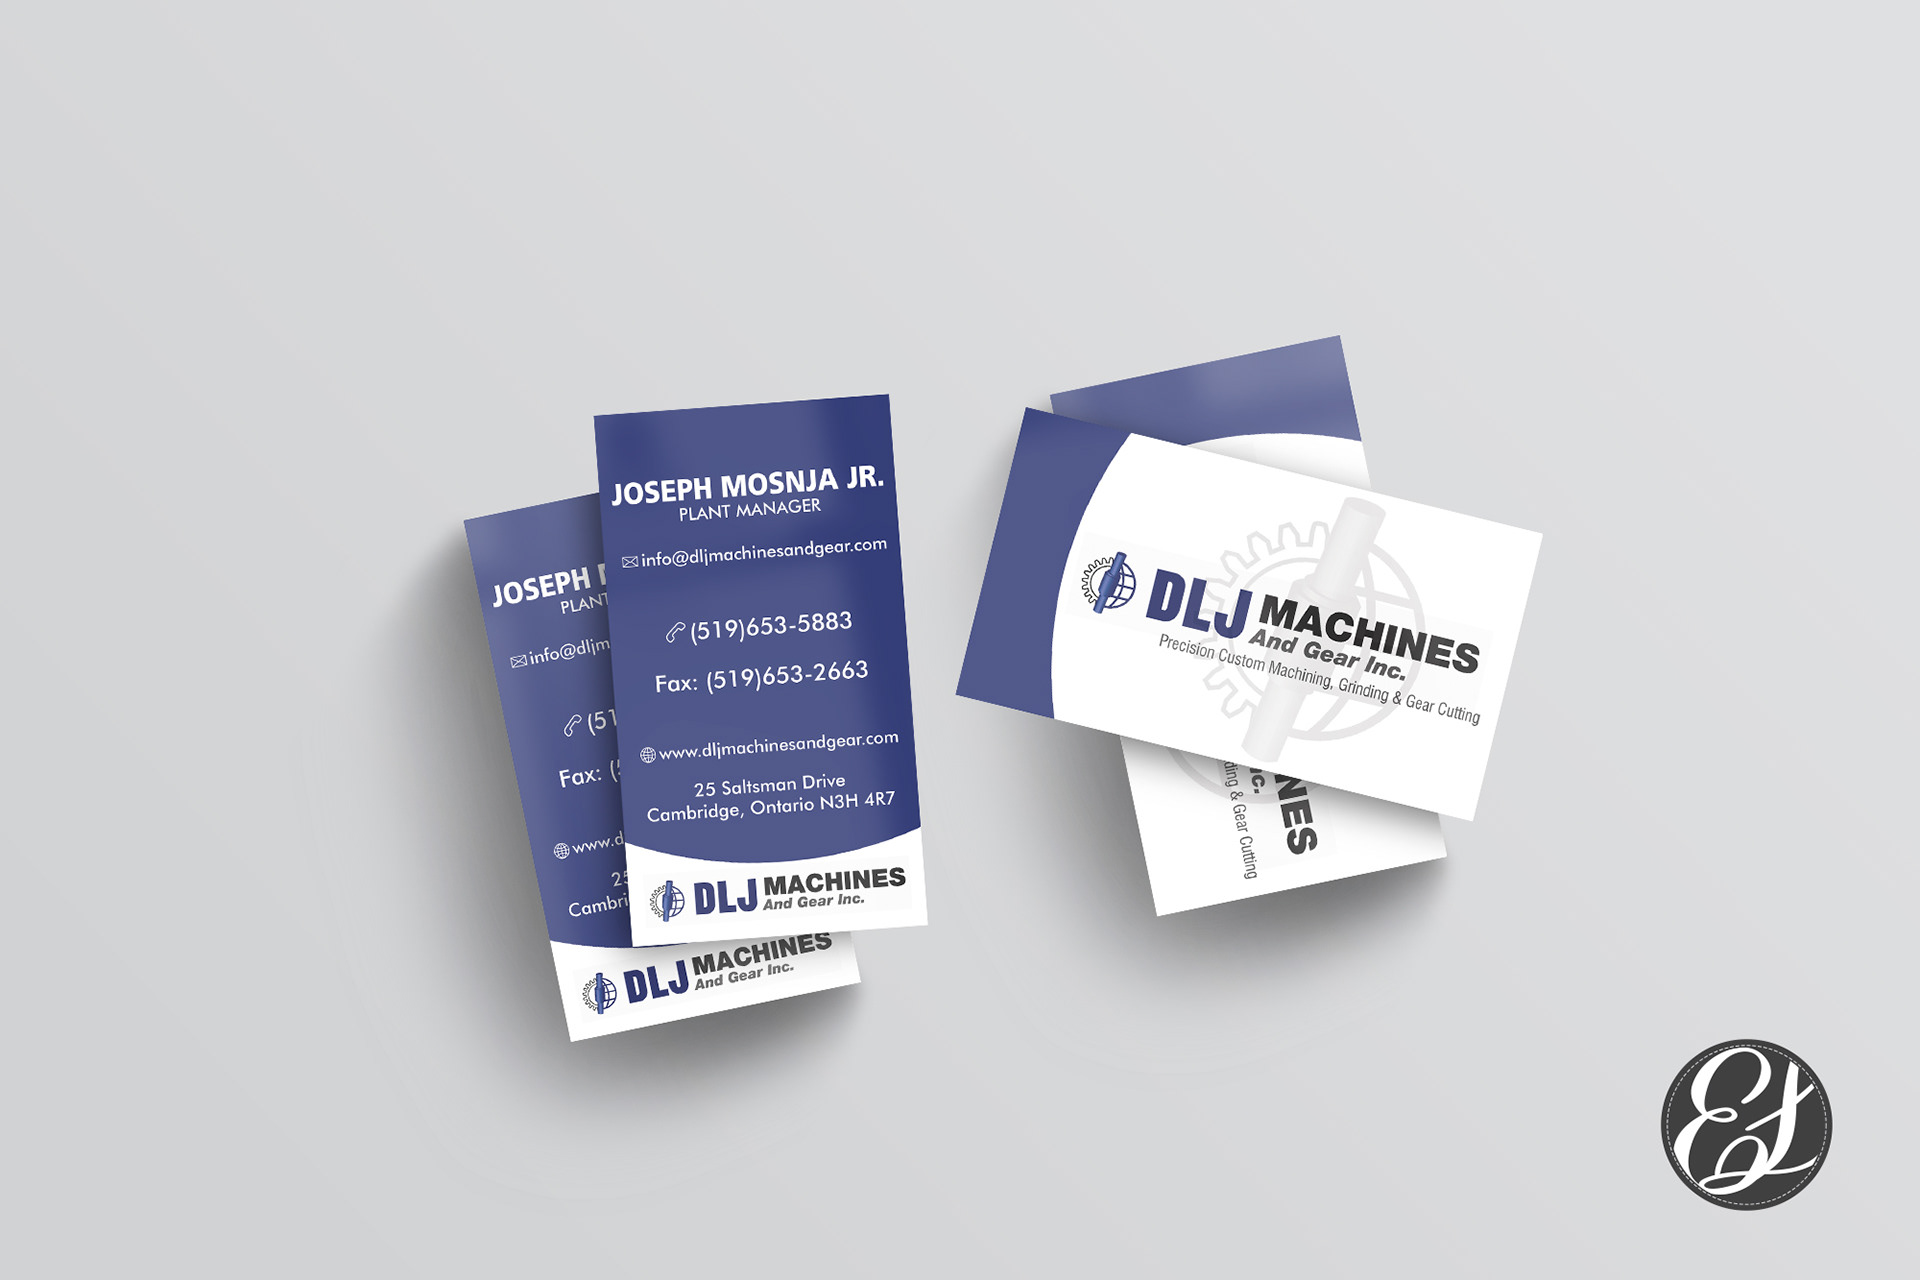 Erica Leis - DLJ Machines and Gear Company Business Card Design